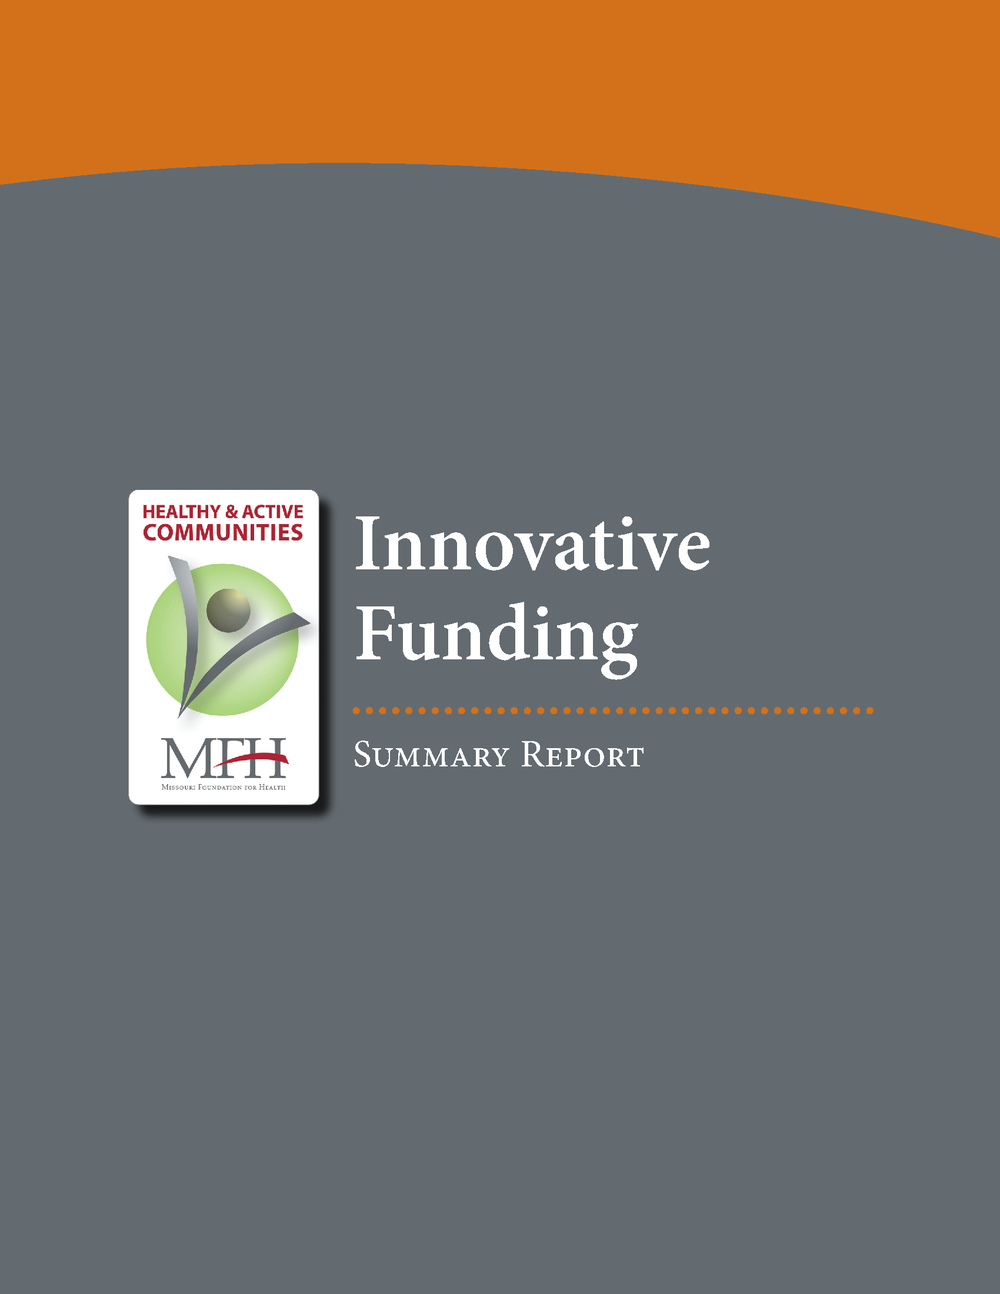 Healthy & Active Communities Innovative Funding Evaluation 2012